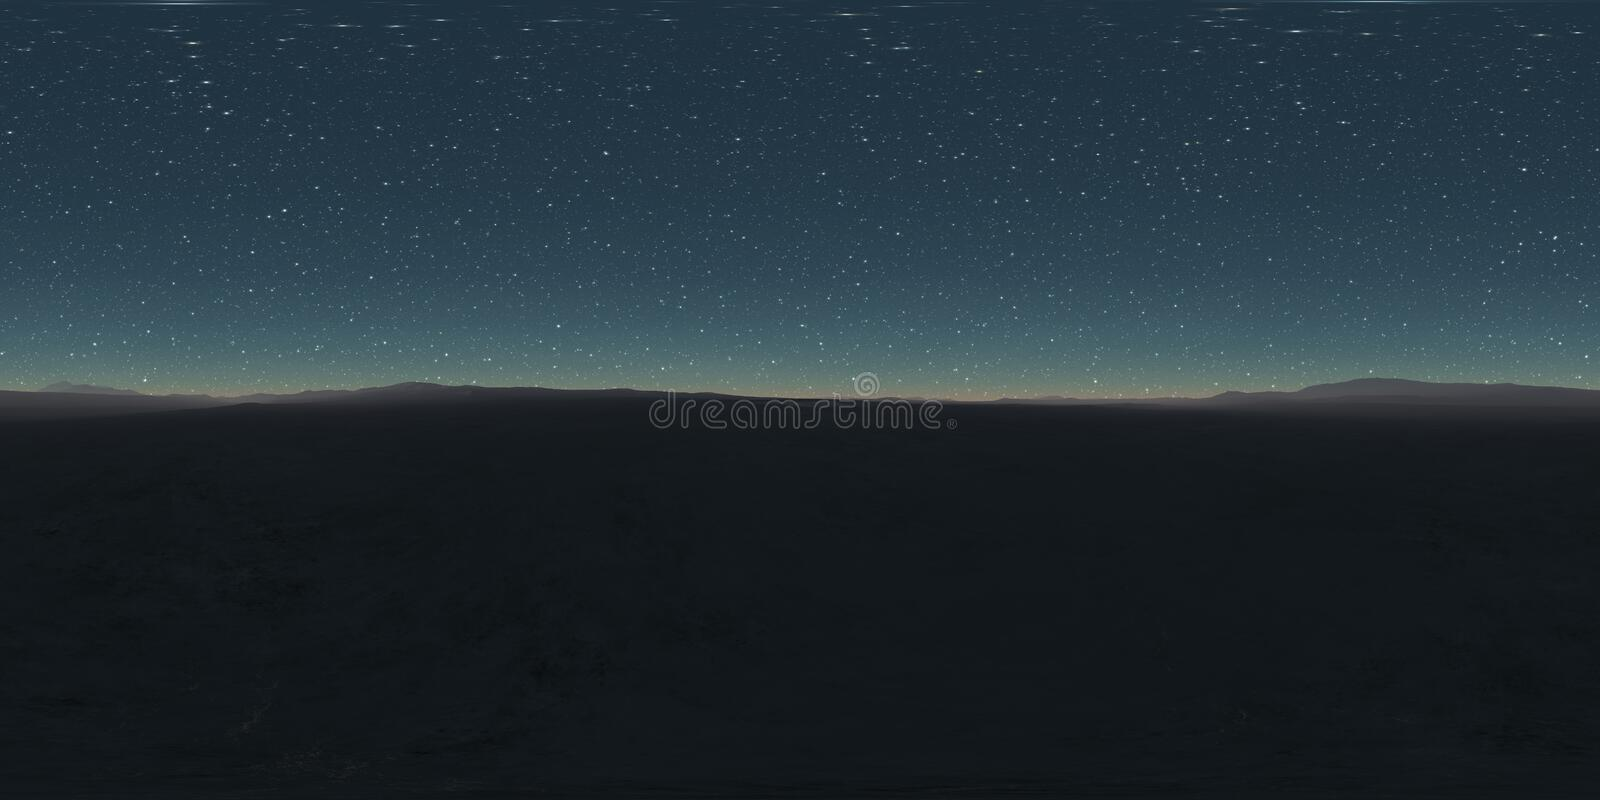 360 degree starry night sky texture, night desert landscape. Equirectangular projection, environment map, HDRI spherical panorama royalty free stock images